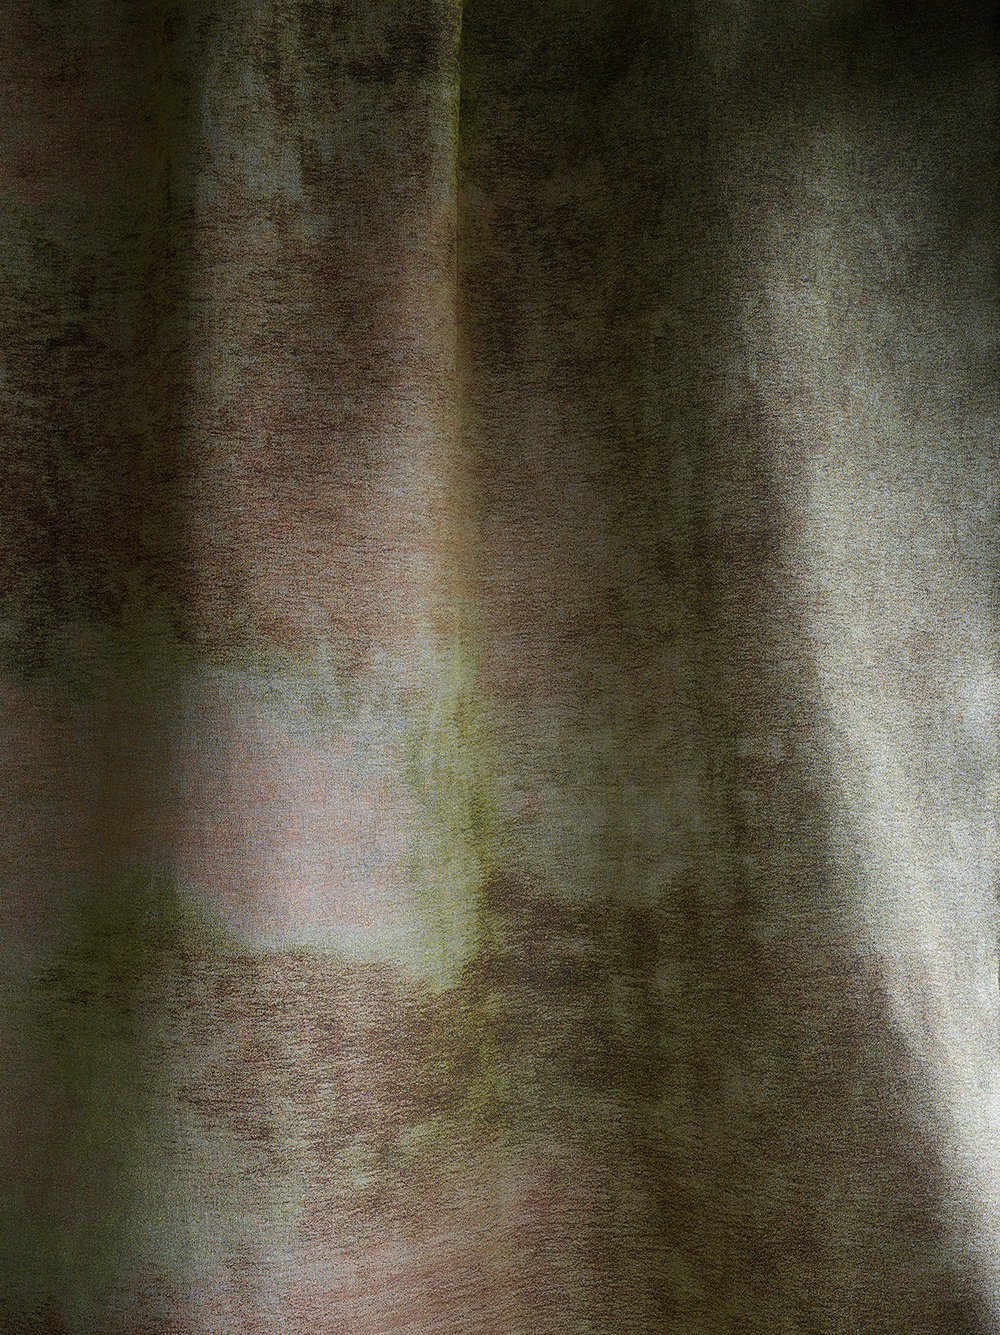 Watercolor_Brown_fabric length.jpg